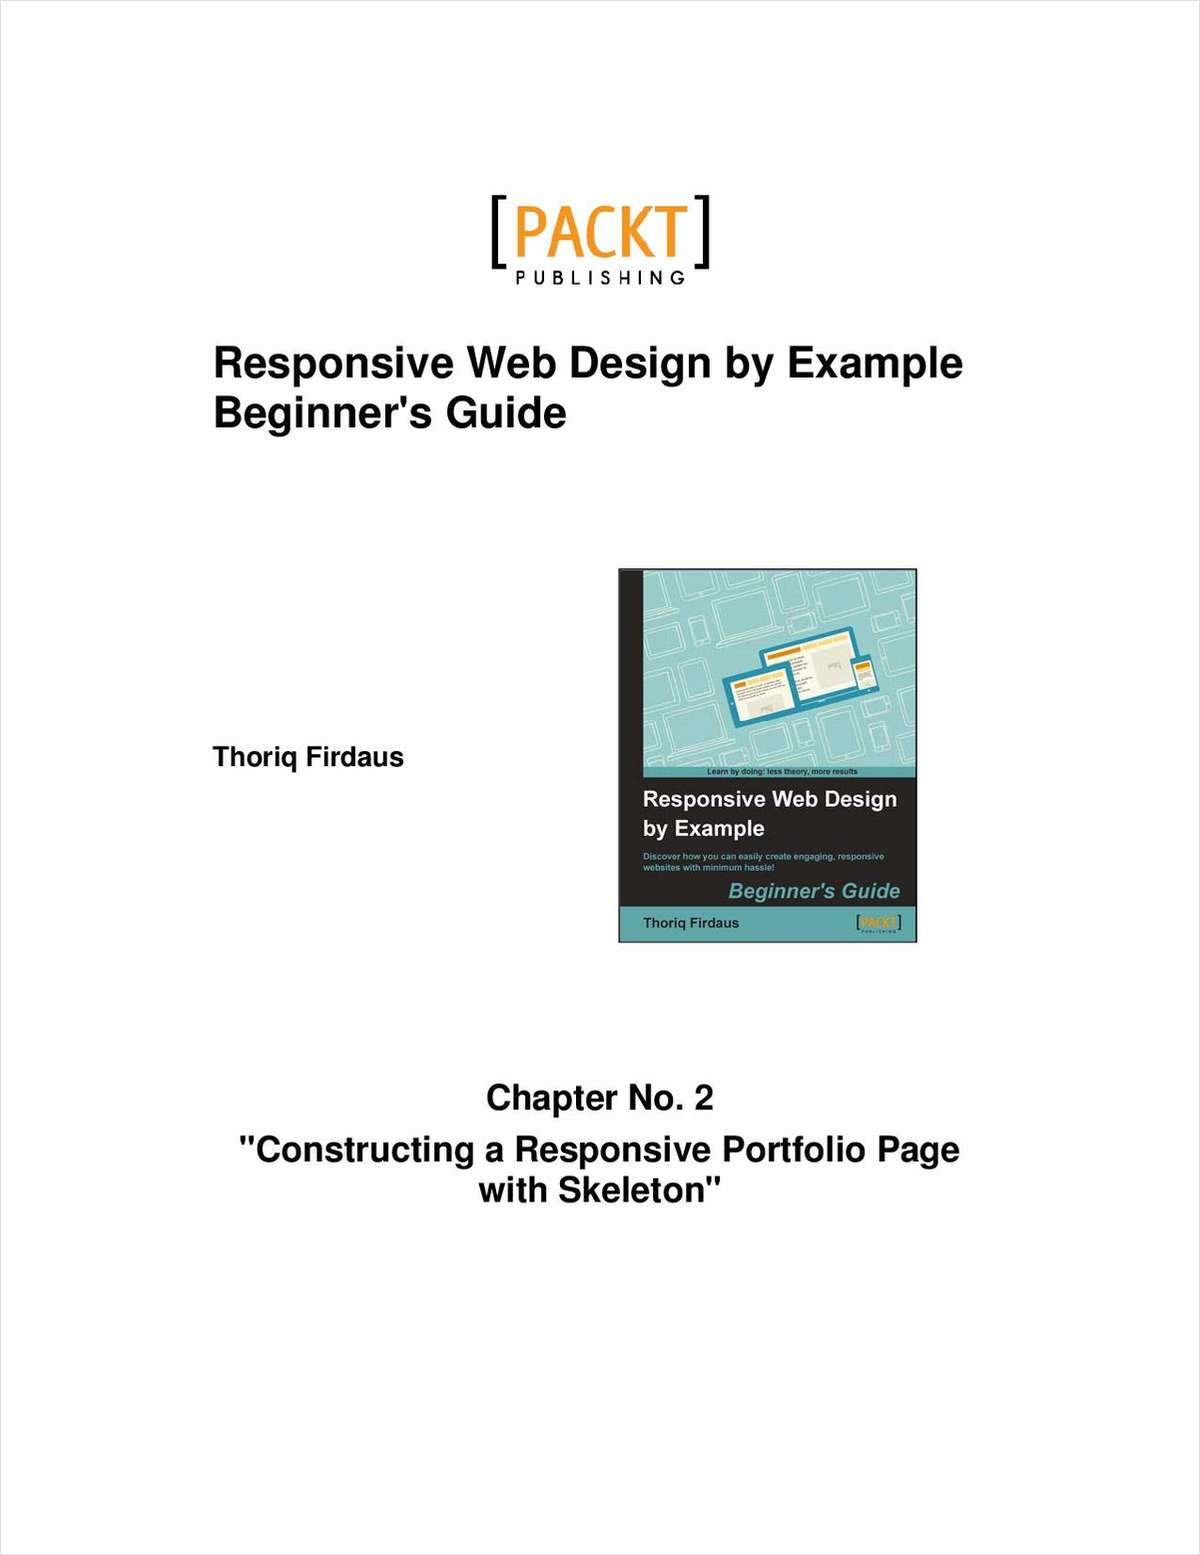 Responsive Web Design by Example--Free 33 Page Excerpt